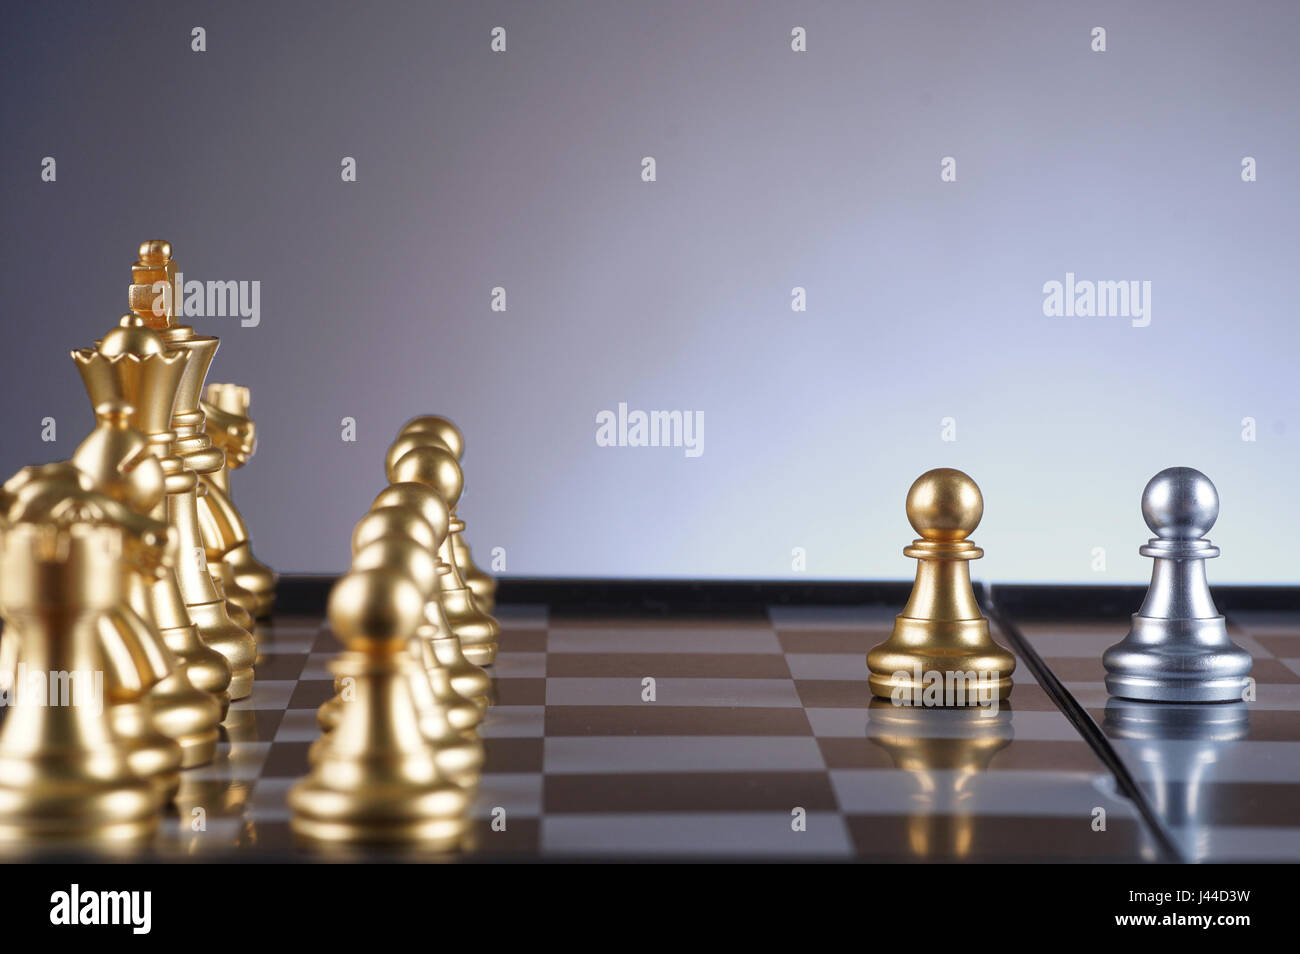 Golden pawn facing silver pawn set of chess on gradient background - leadership, team, successful and business concept - Stock Image